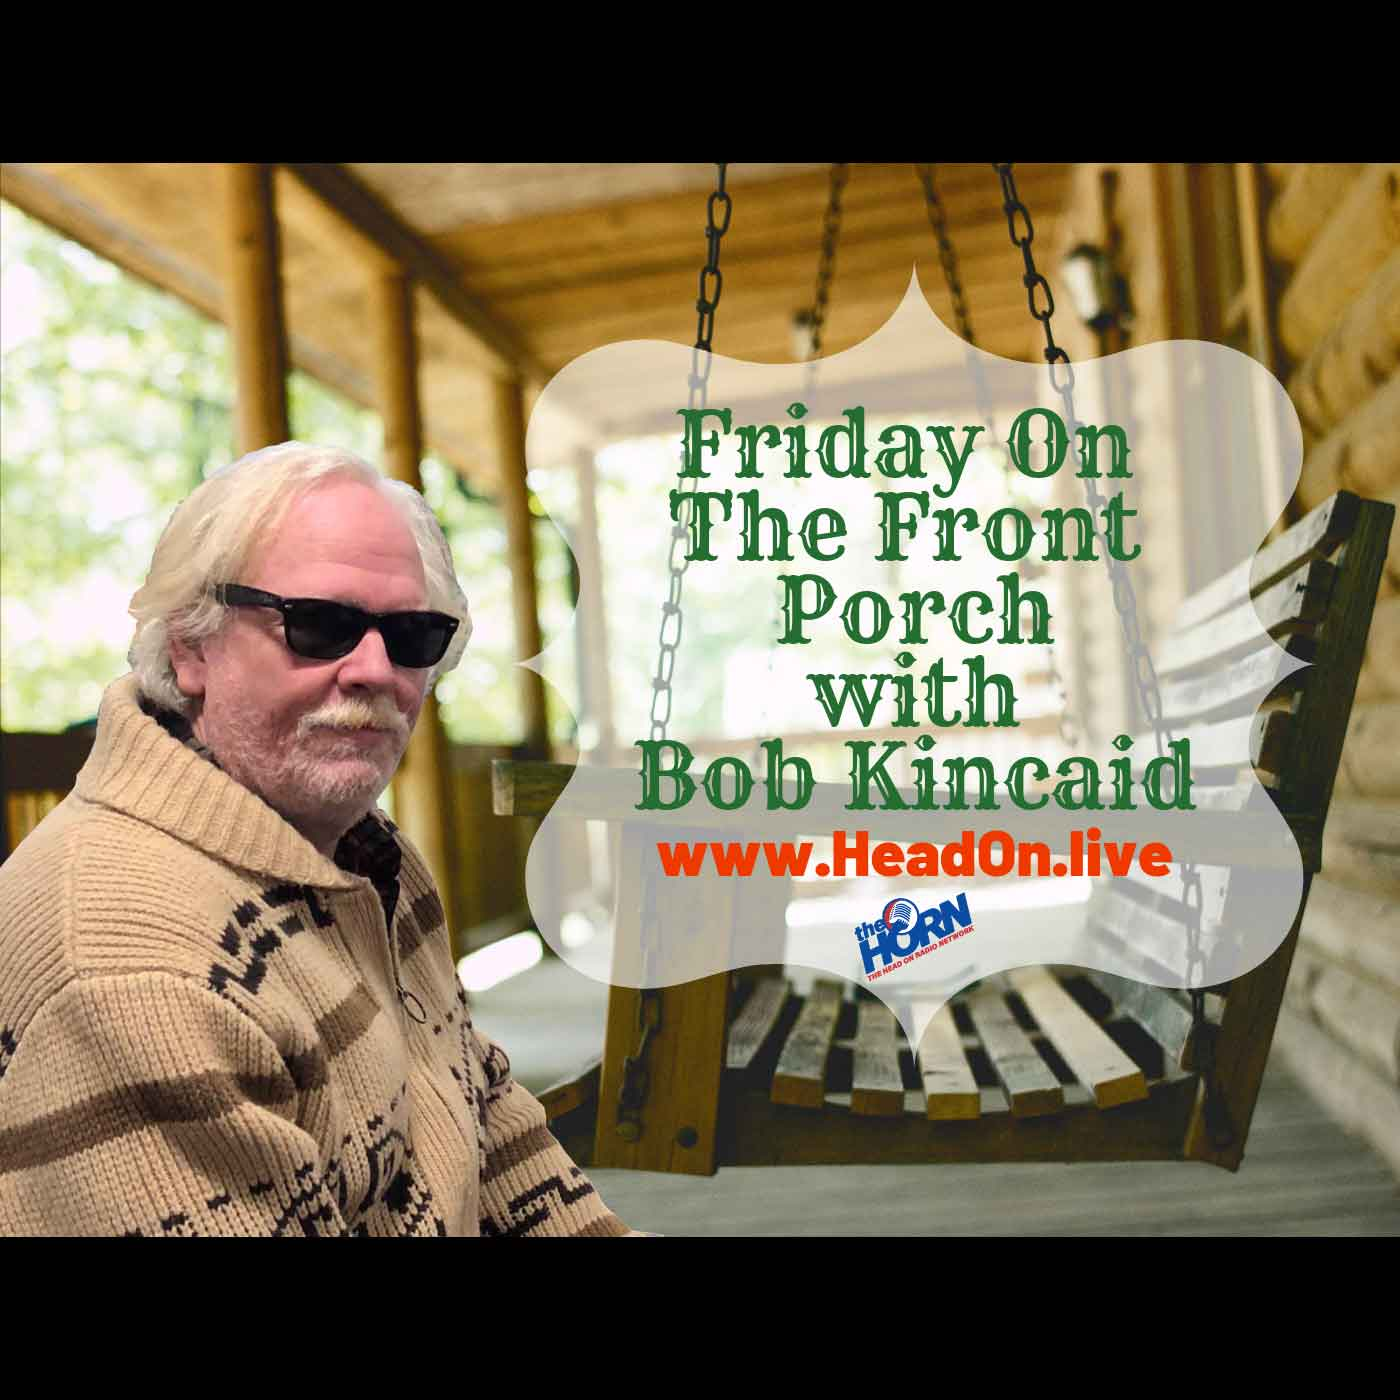 Friday-on-the-Frontovid Porch Friday, Head-ON With Bob Kincaid, 3 July 2020